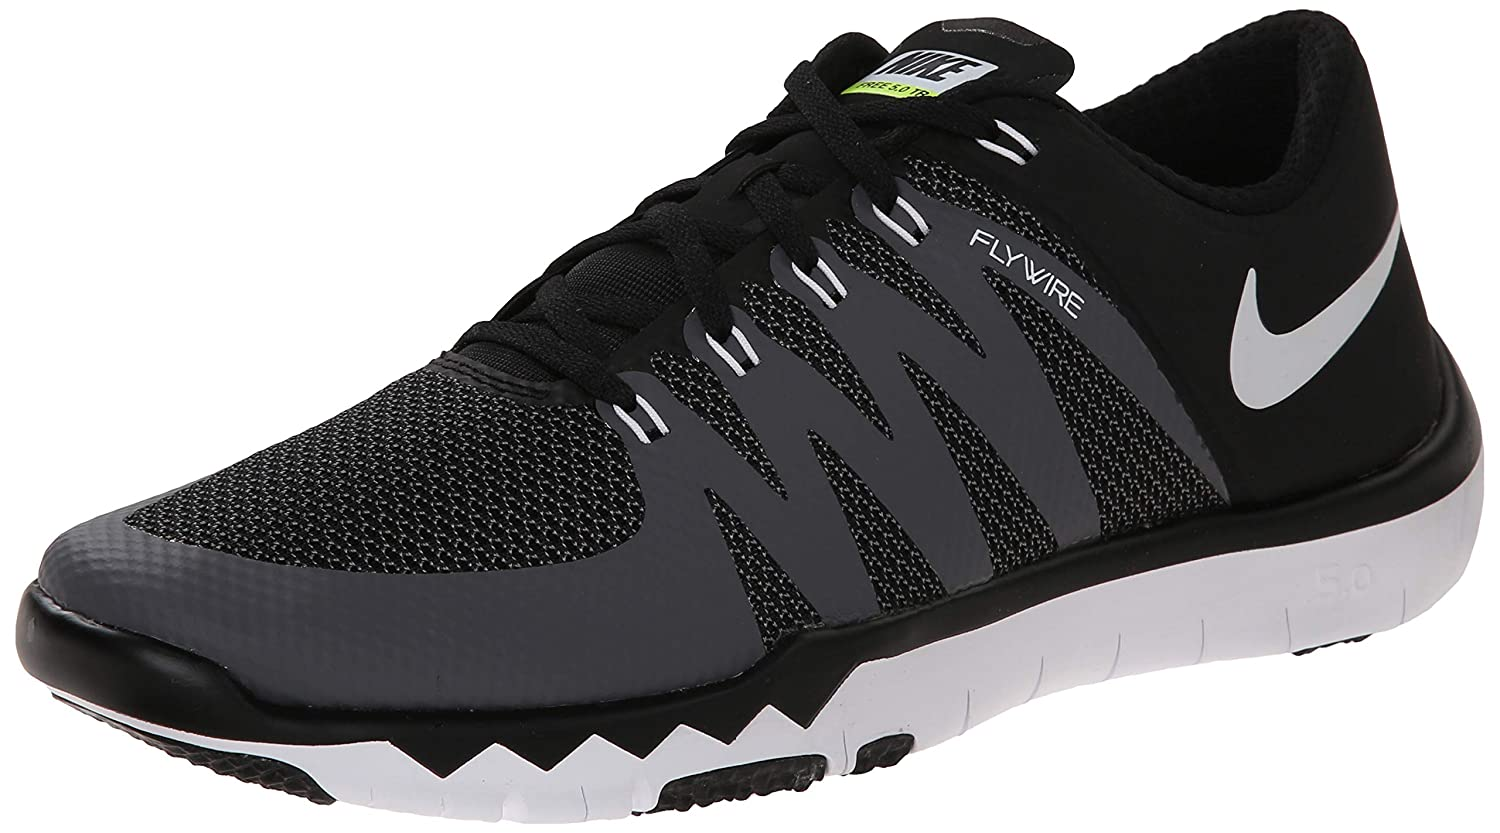 Nike Free 5.0 V4 Black Dark Grey Shopee Malaysia  Nike Men's Free Trainer 5.0 V6 Training Shoe